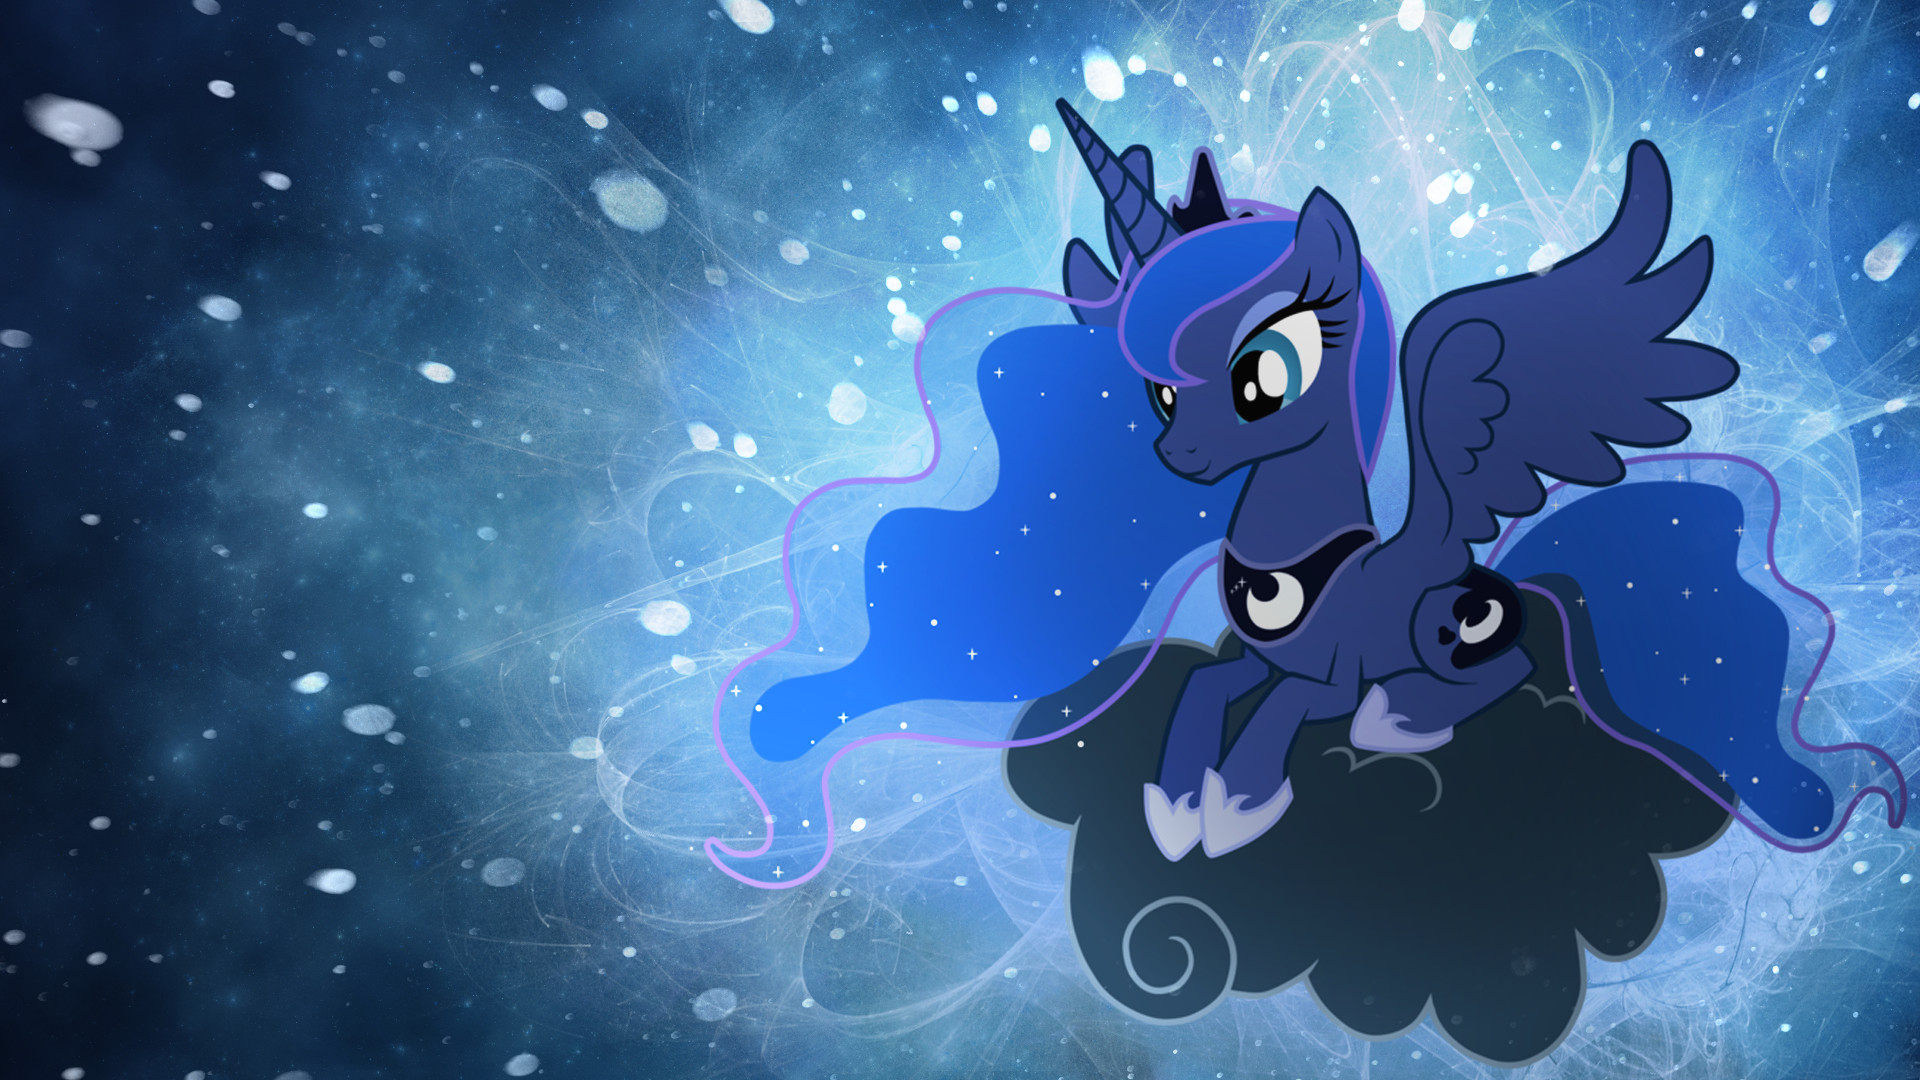 Princess Luna wallpaper by artist-overmare.png